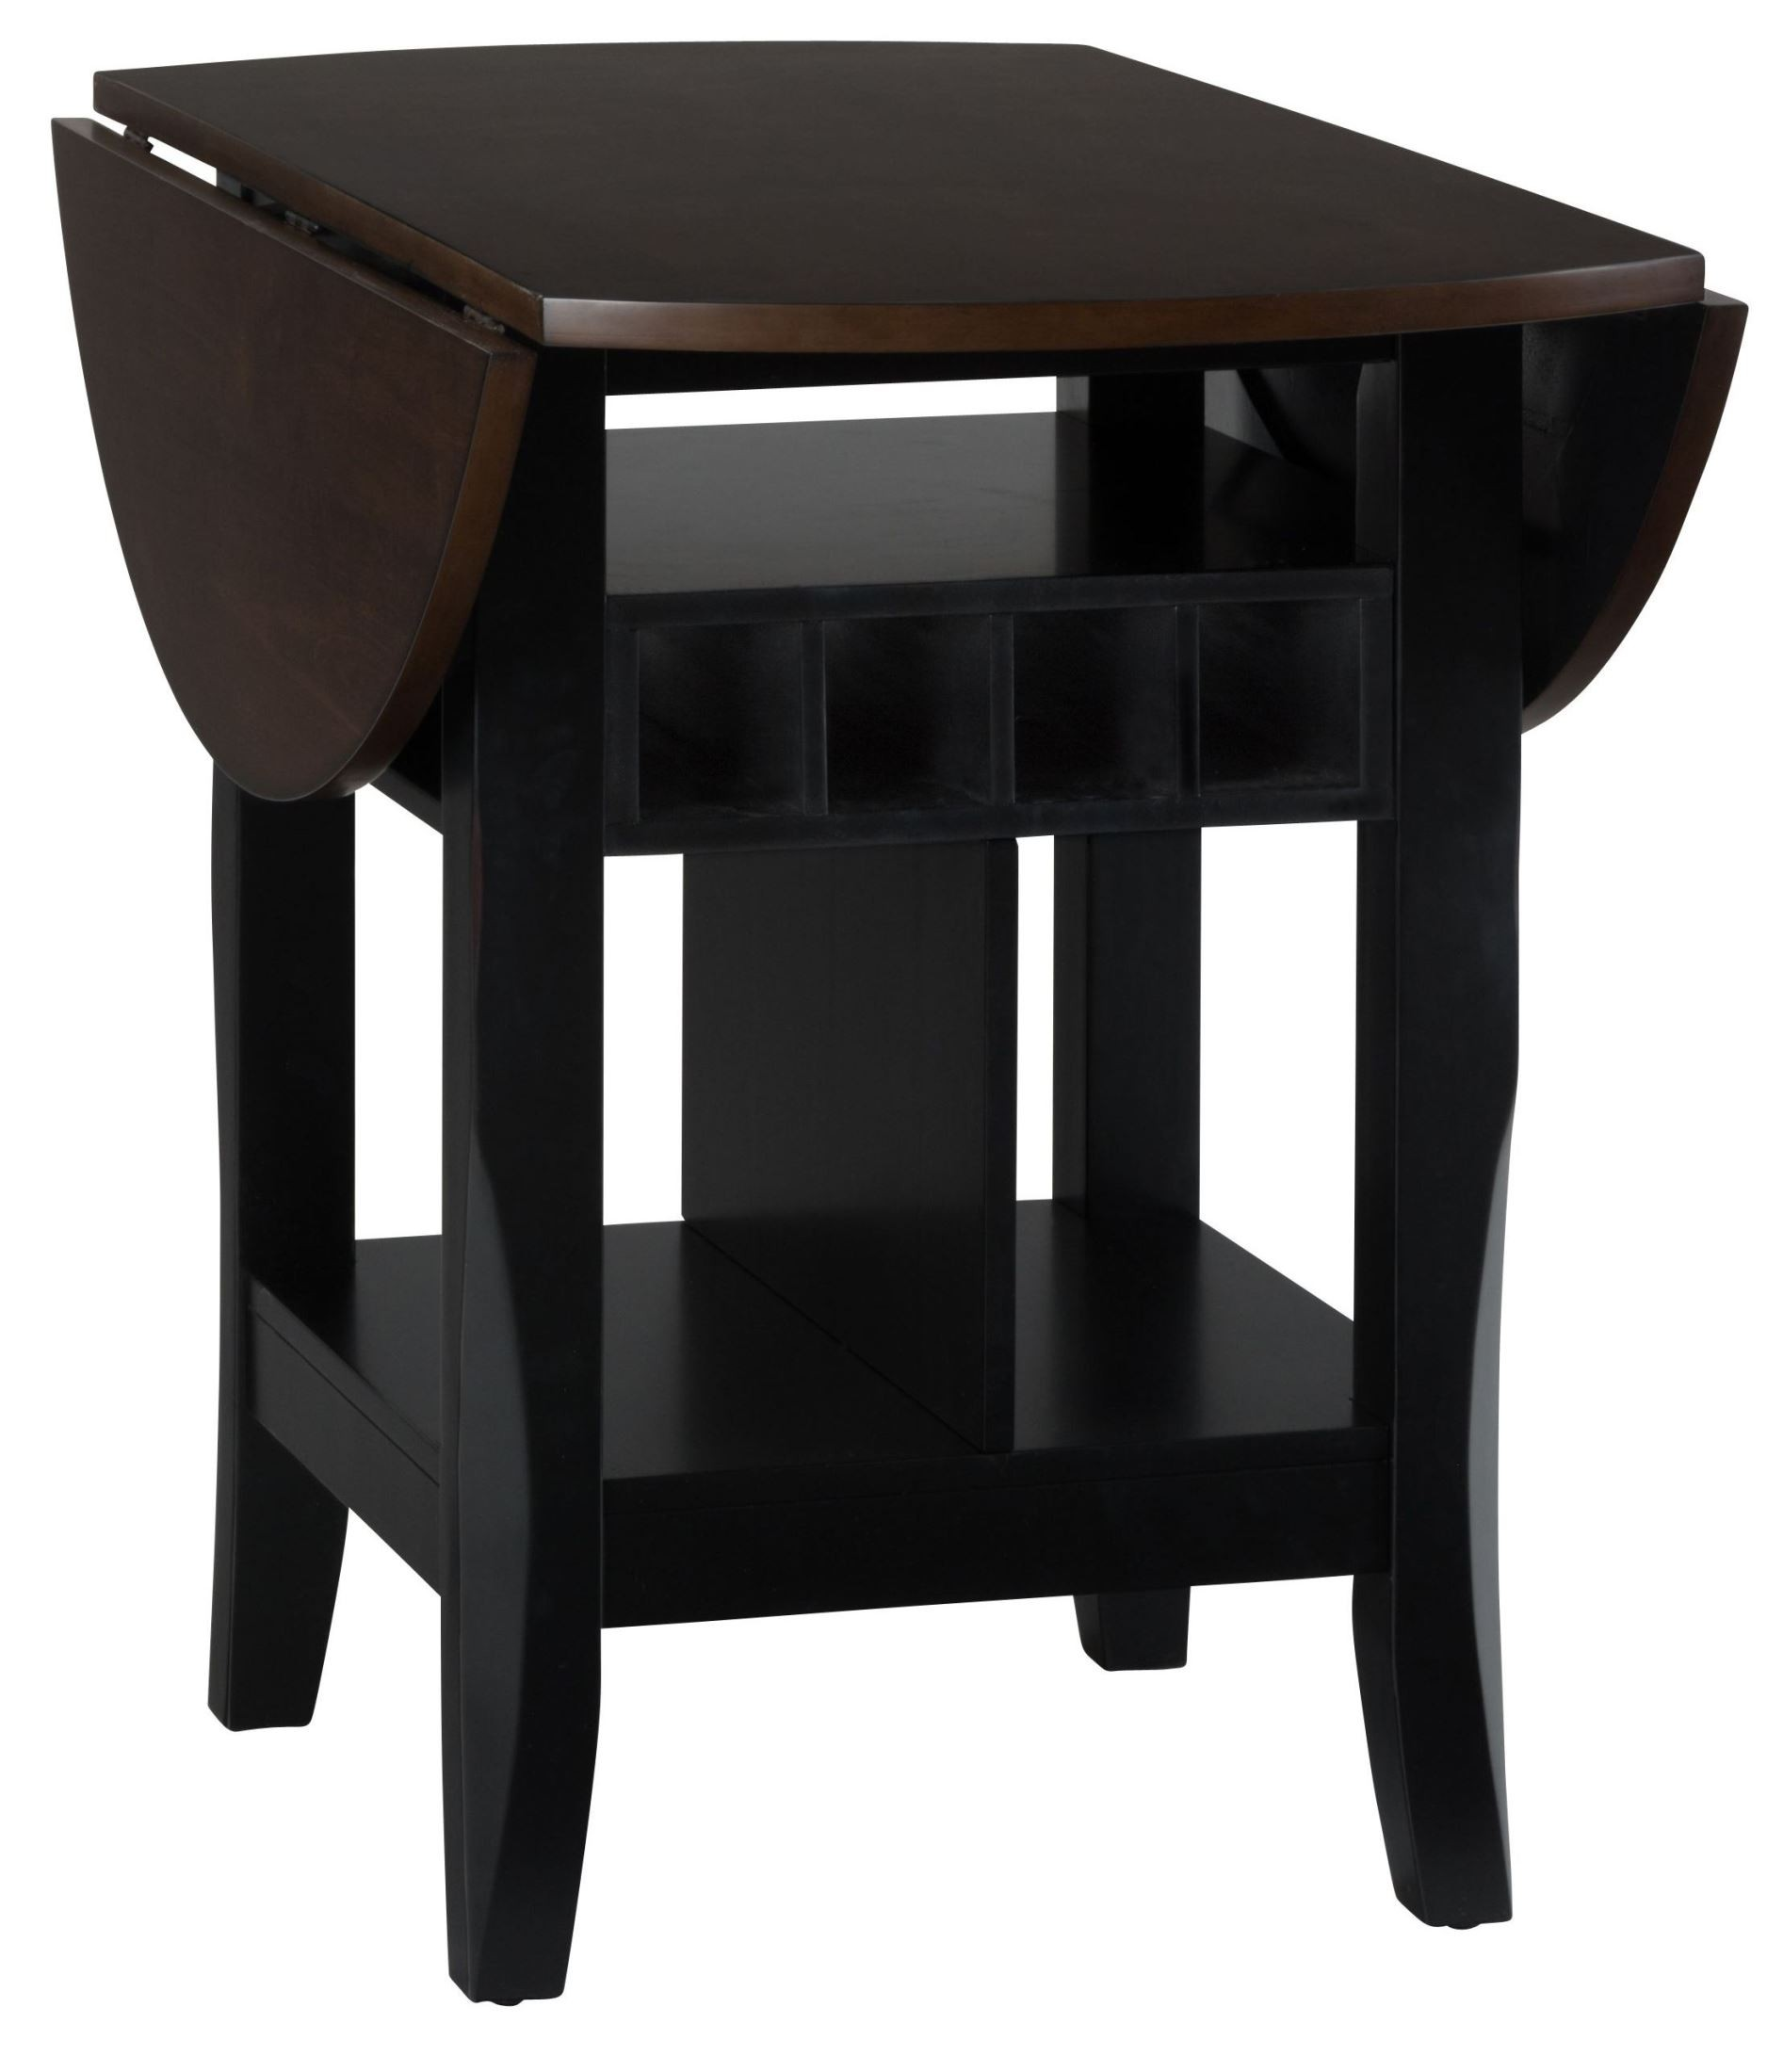 Braden Antique Black 48quot Round Extendable Drop Leaf  : 272 48angleleafdown from colemanfurniture.com size 1876 x 2200 jpeg 194kB